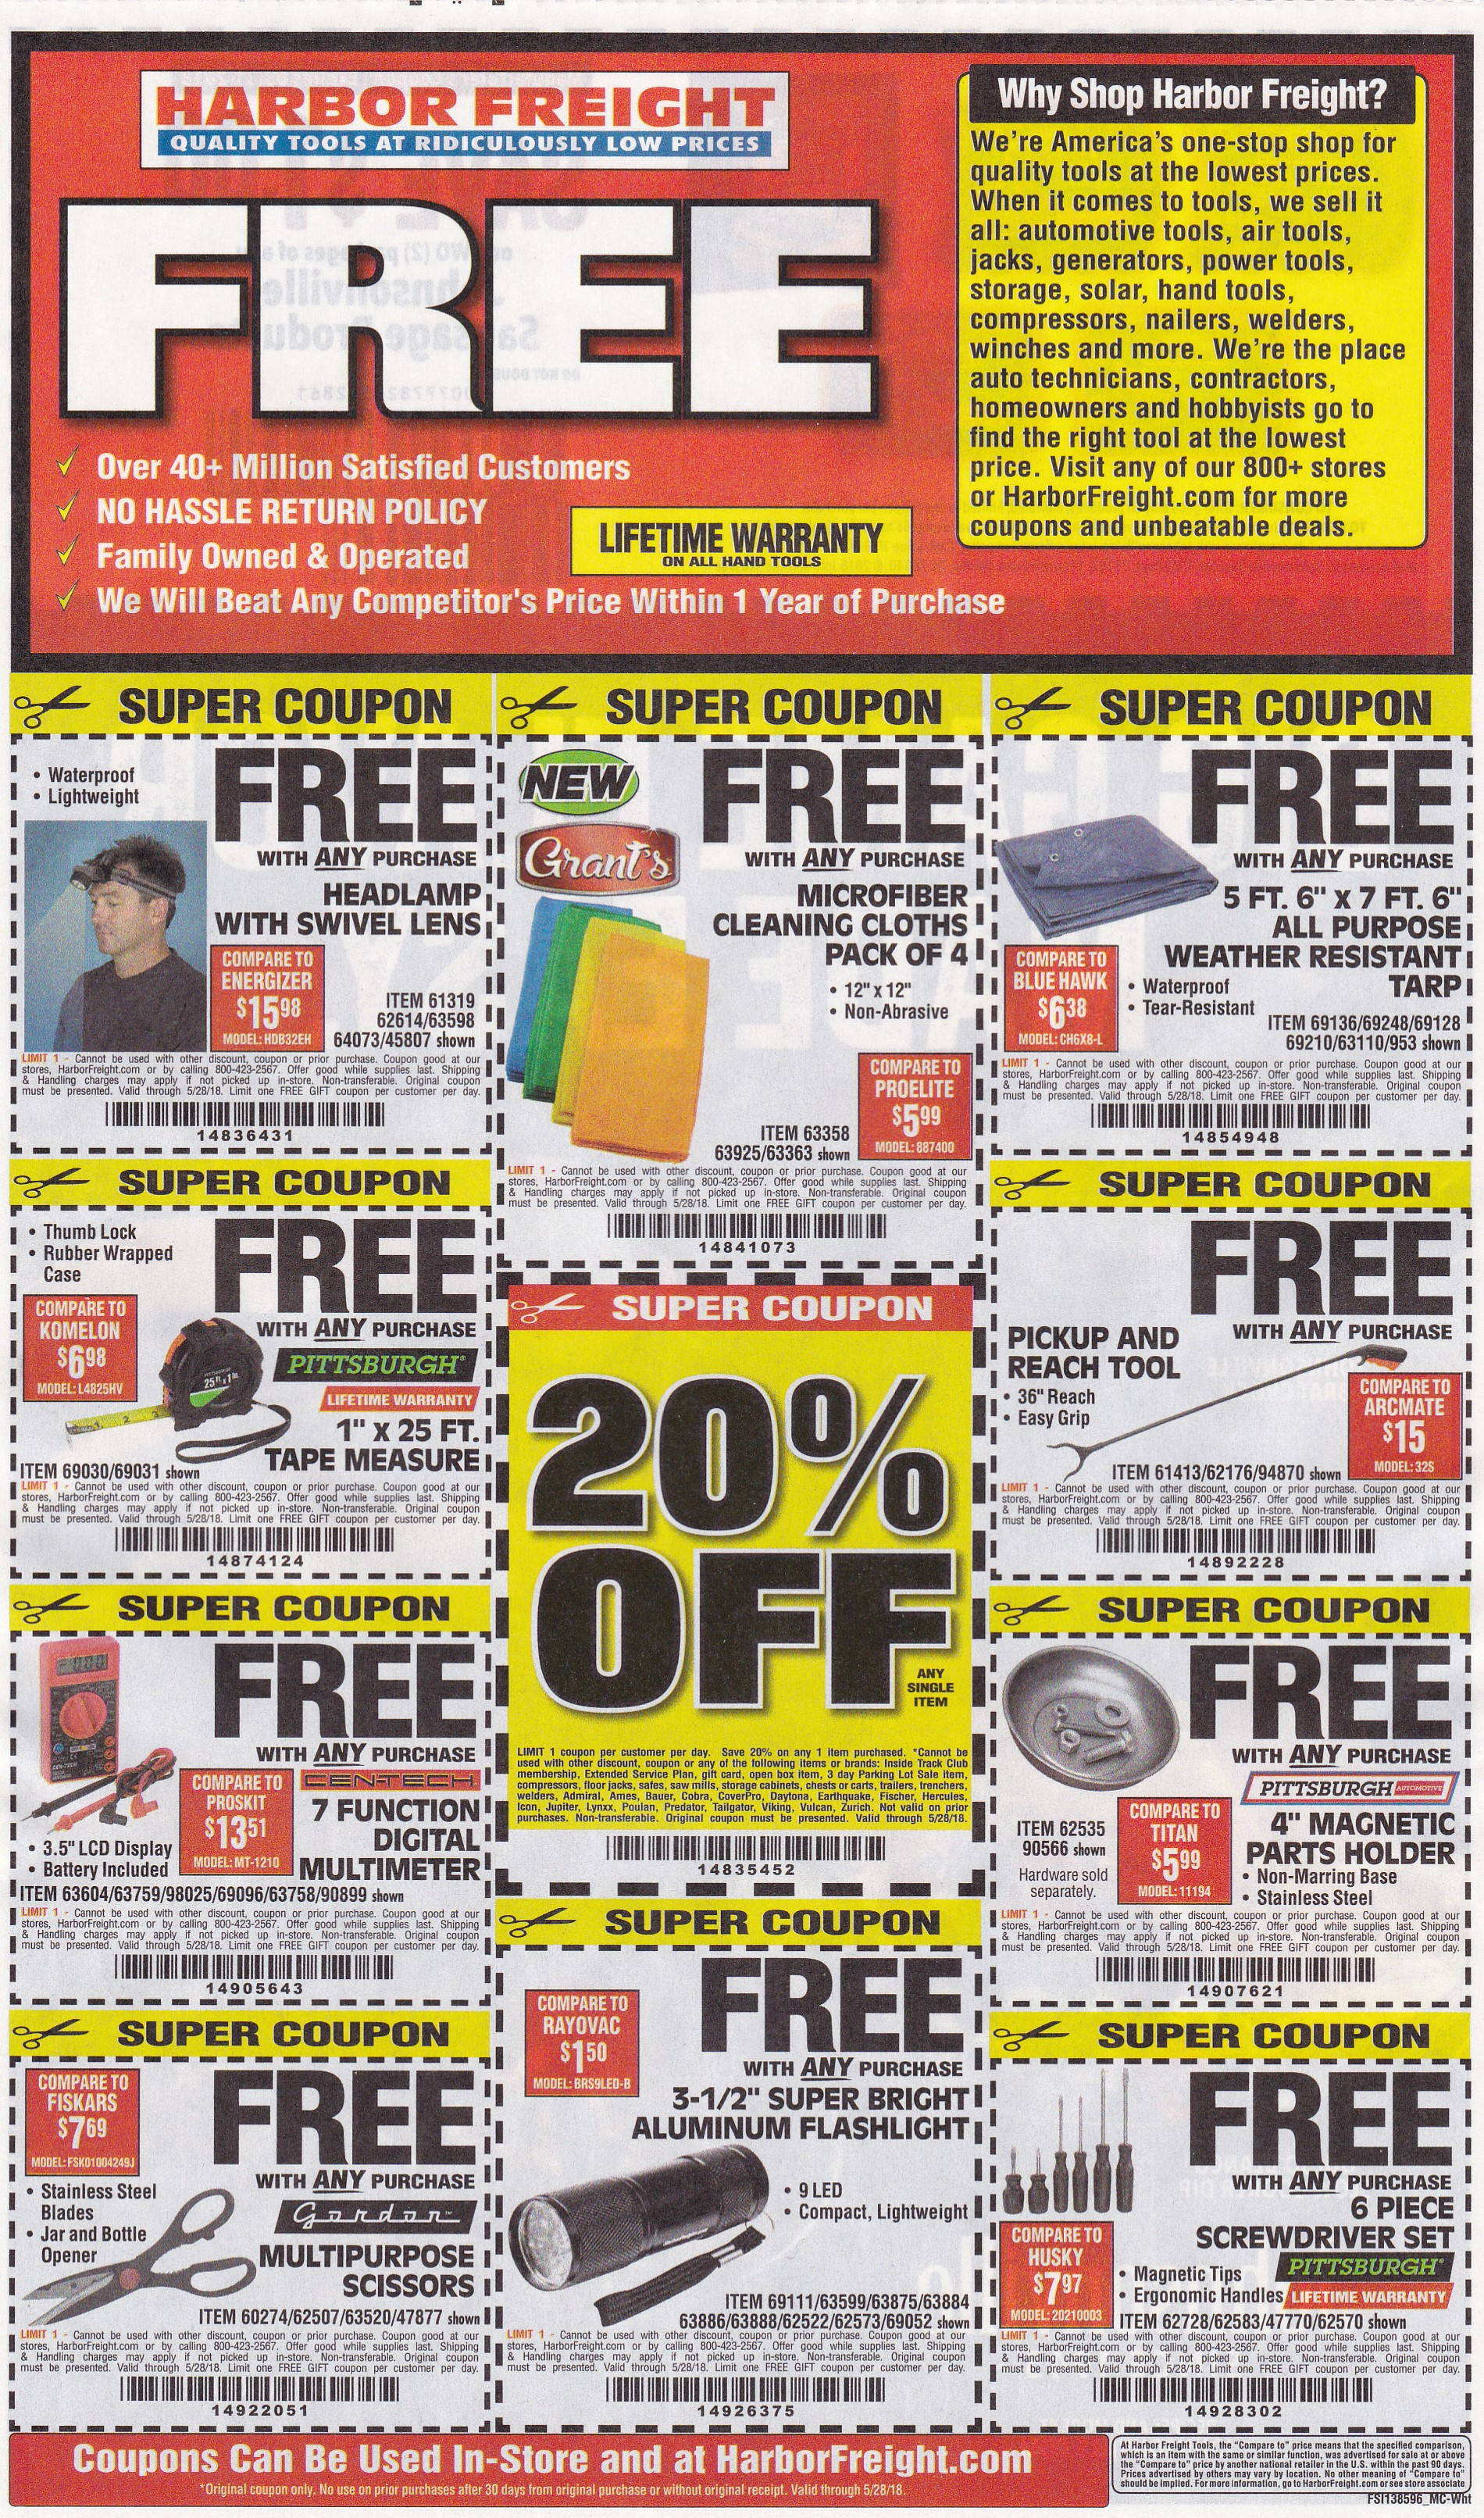 10 Harbor Freight Free Item Coupons Expiring 5 28 18 Struggleville